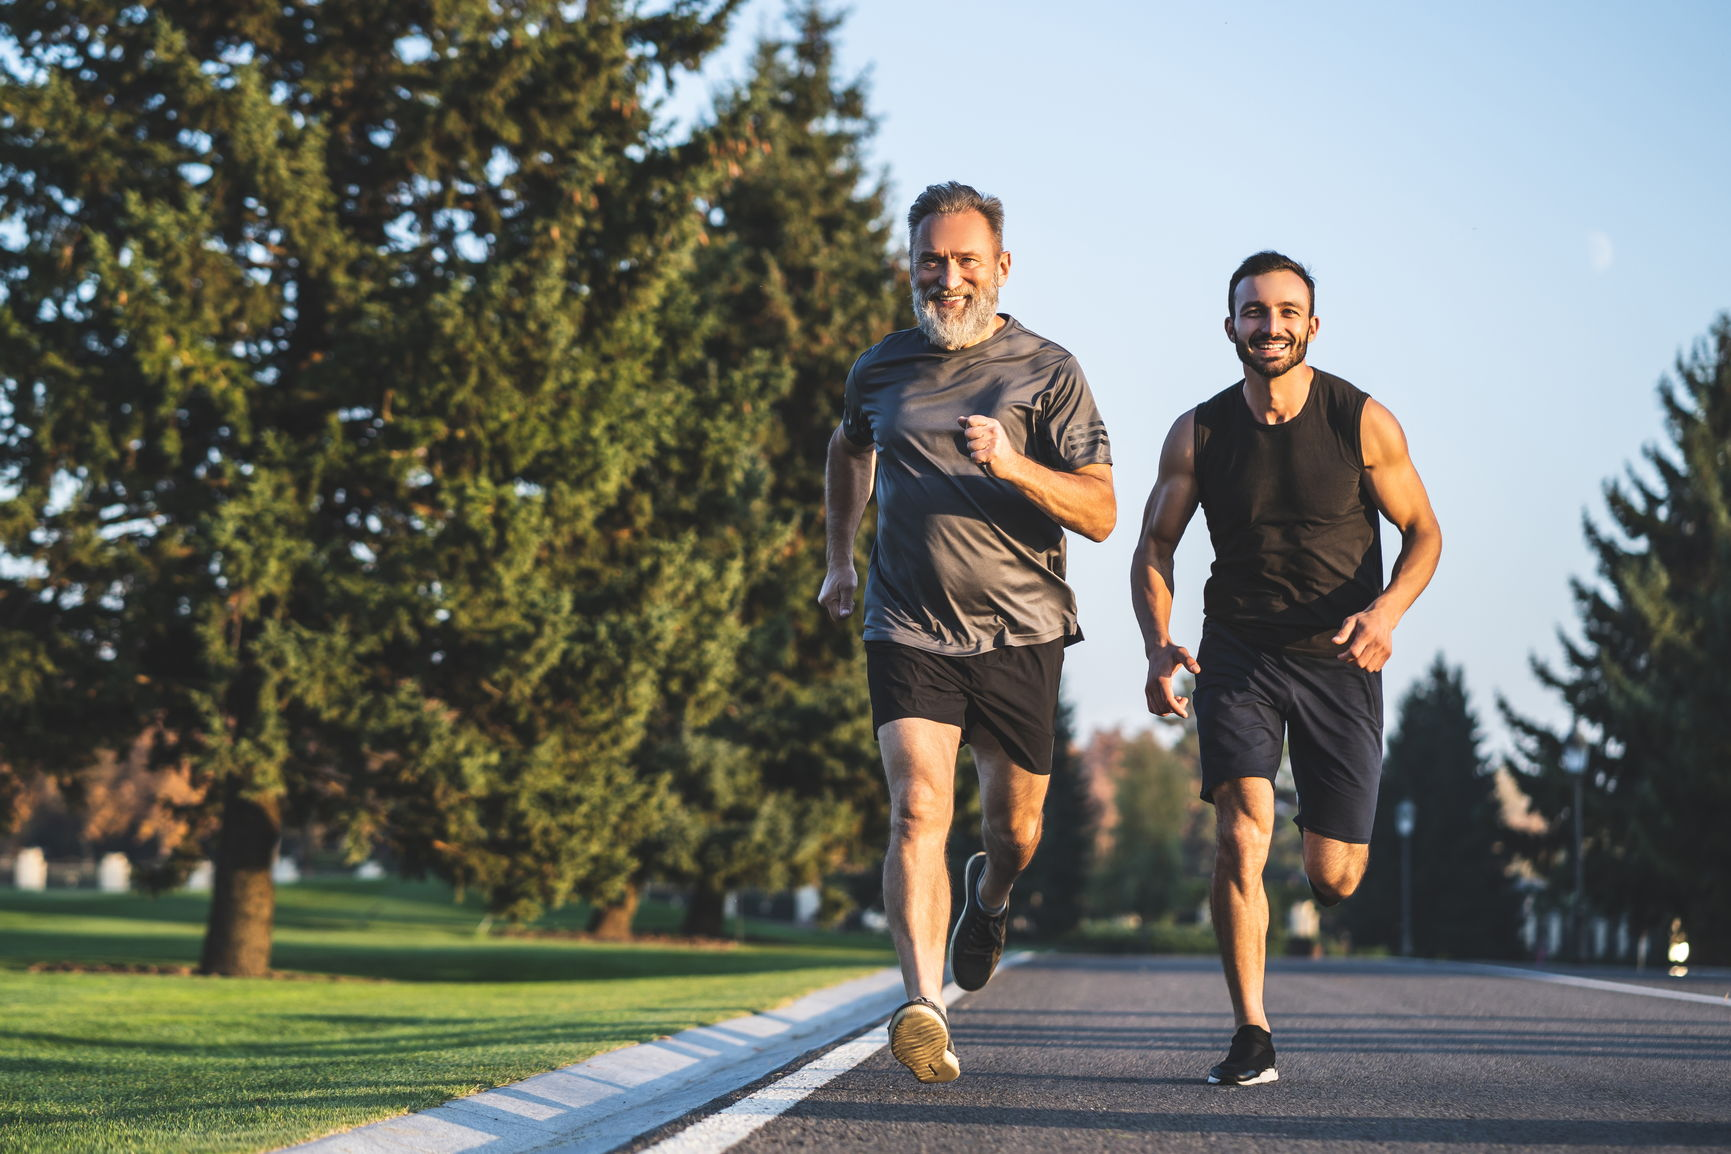 lose weight by being physically active